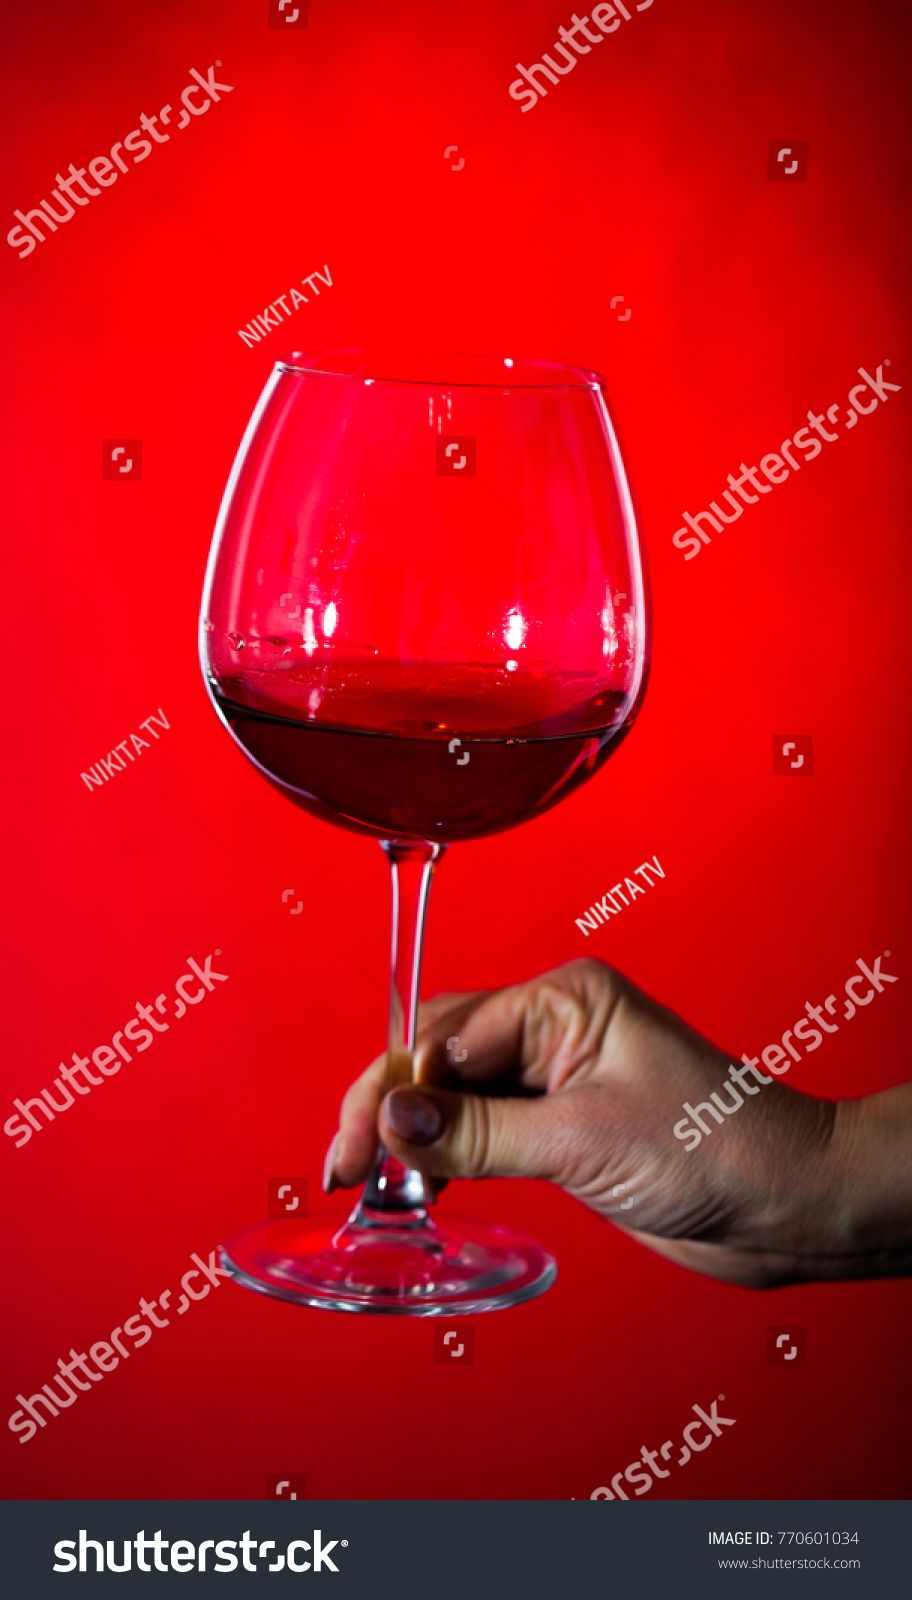 Fragile Goblet Of The Red Wine On The Wooden Stand On Wooden Wall Background Hand Holding Wineglass Ad Affiliate Wine Wood In 2020 Red Wine Wine Wall Background